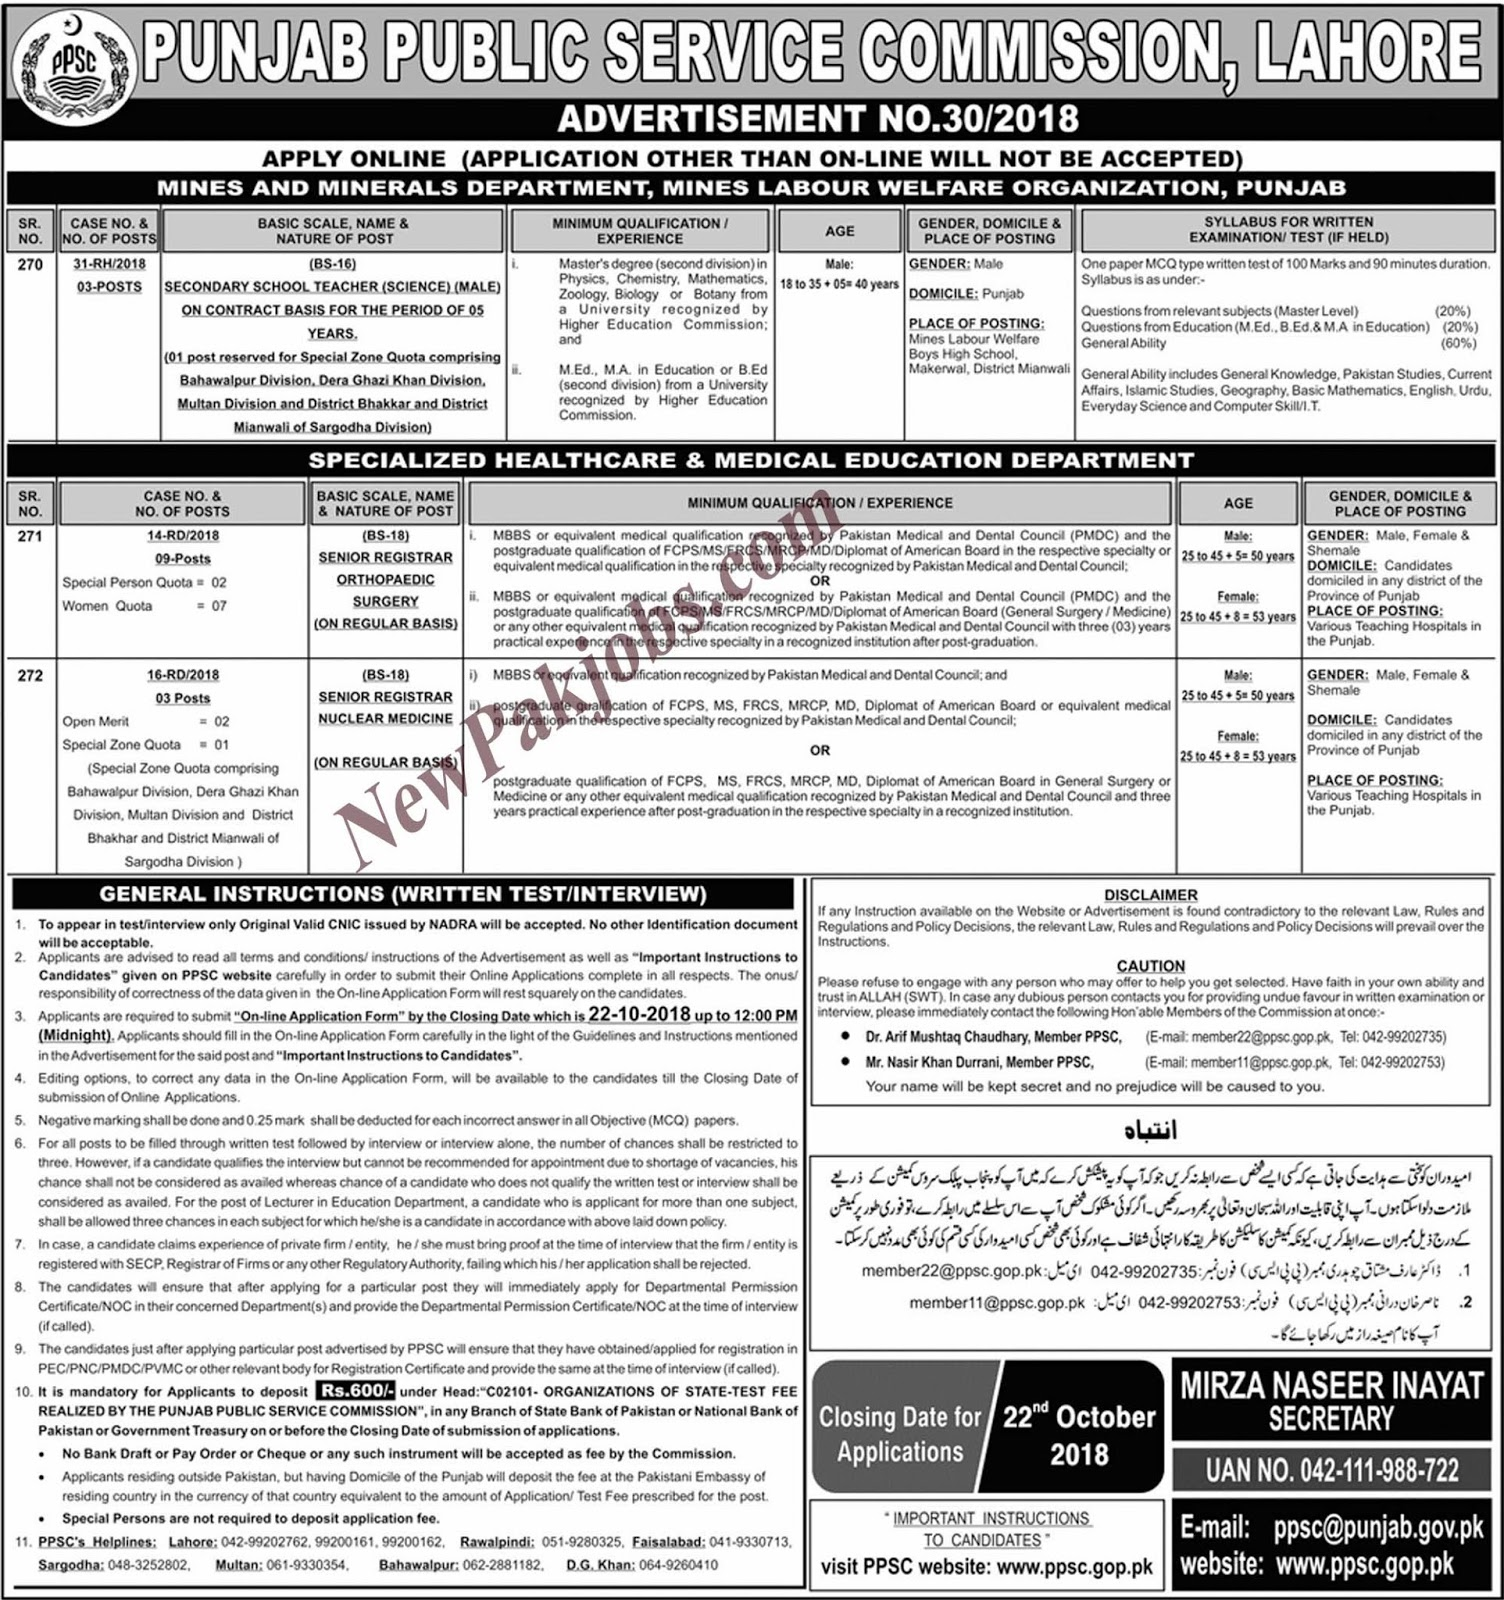 SST Teachers and Other Jobs in PPSC October 2018 , Advertisement No 30/2018